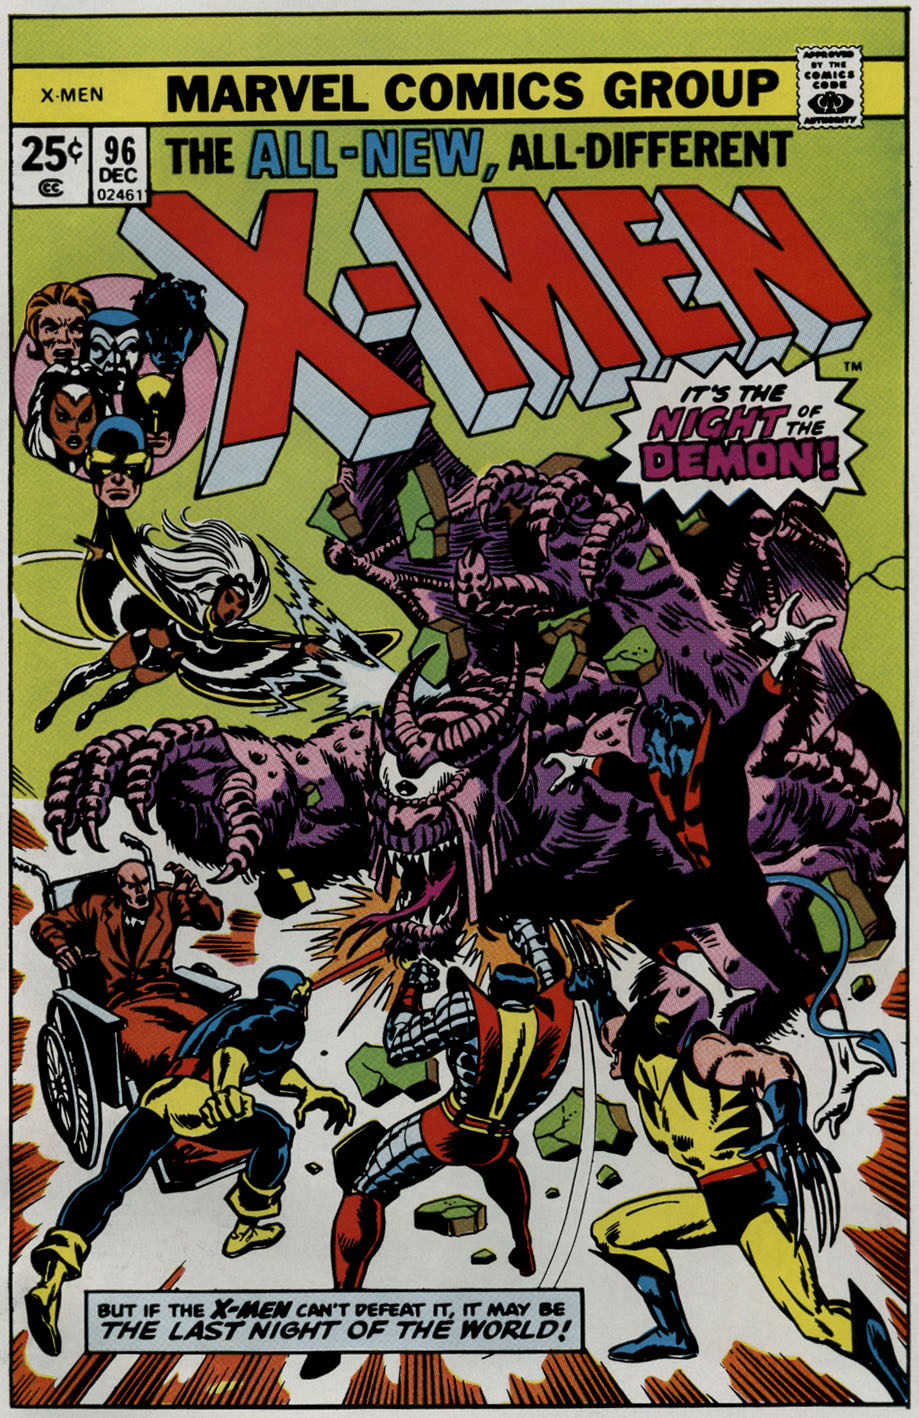 Classic X-Men Vol 1 4 Bonus 002.jpg